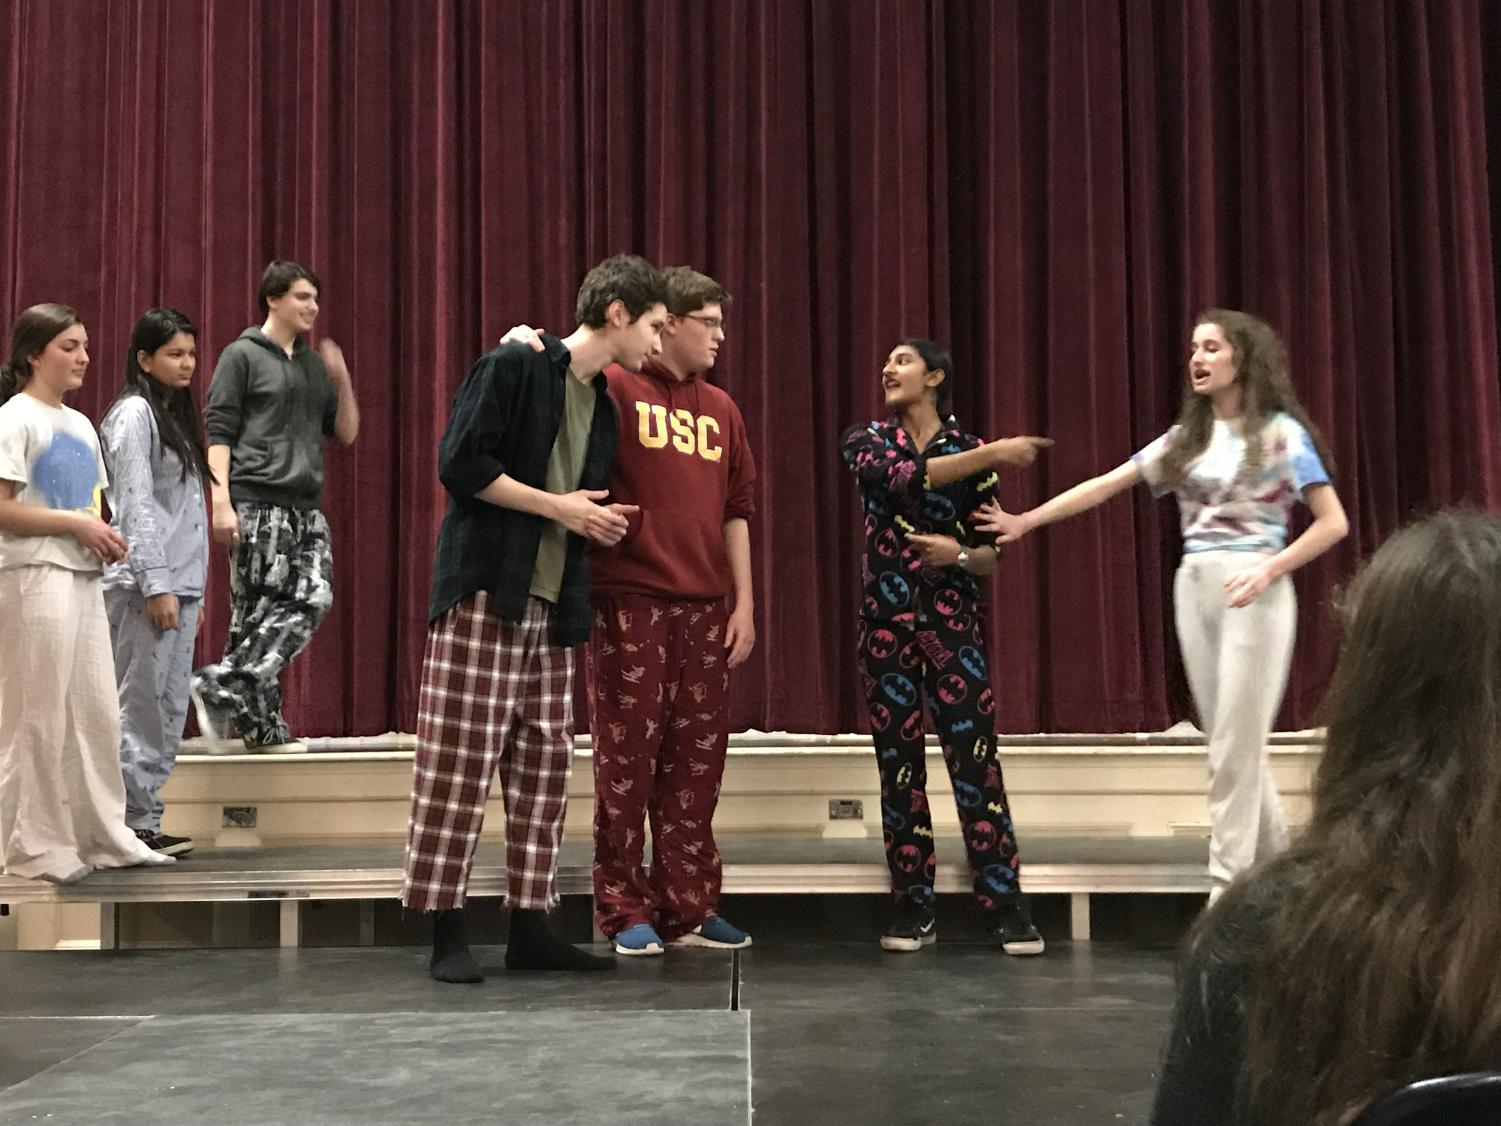 The Needs Improvment troupe performs creative skits in their pajamas on Jan. 11 in the Roberts-Dubbs Auditorium. Improv reminds us of the endless possibilities of imagination.